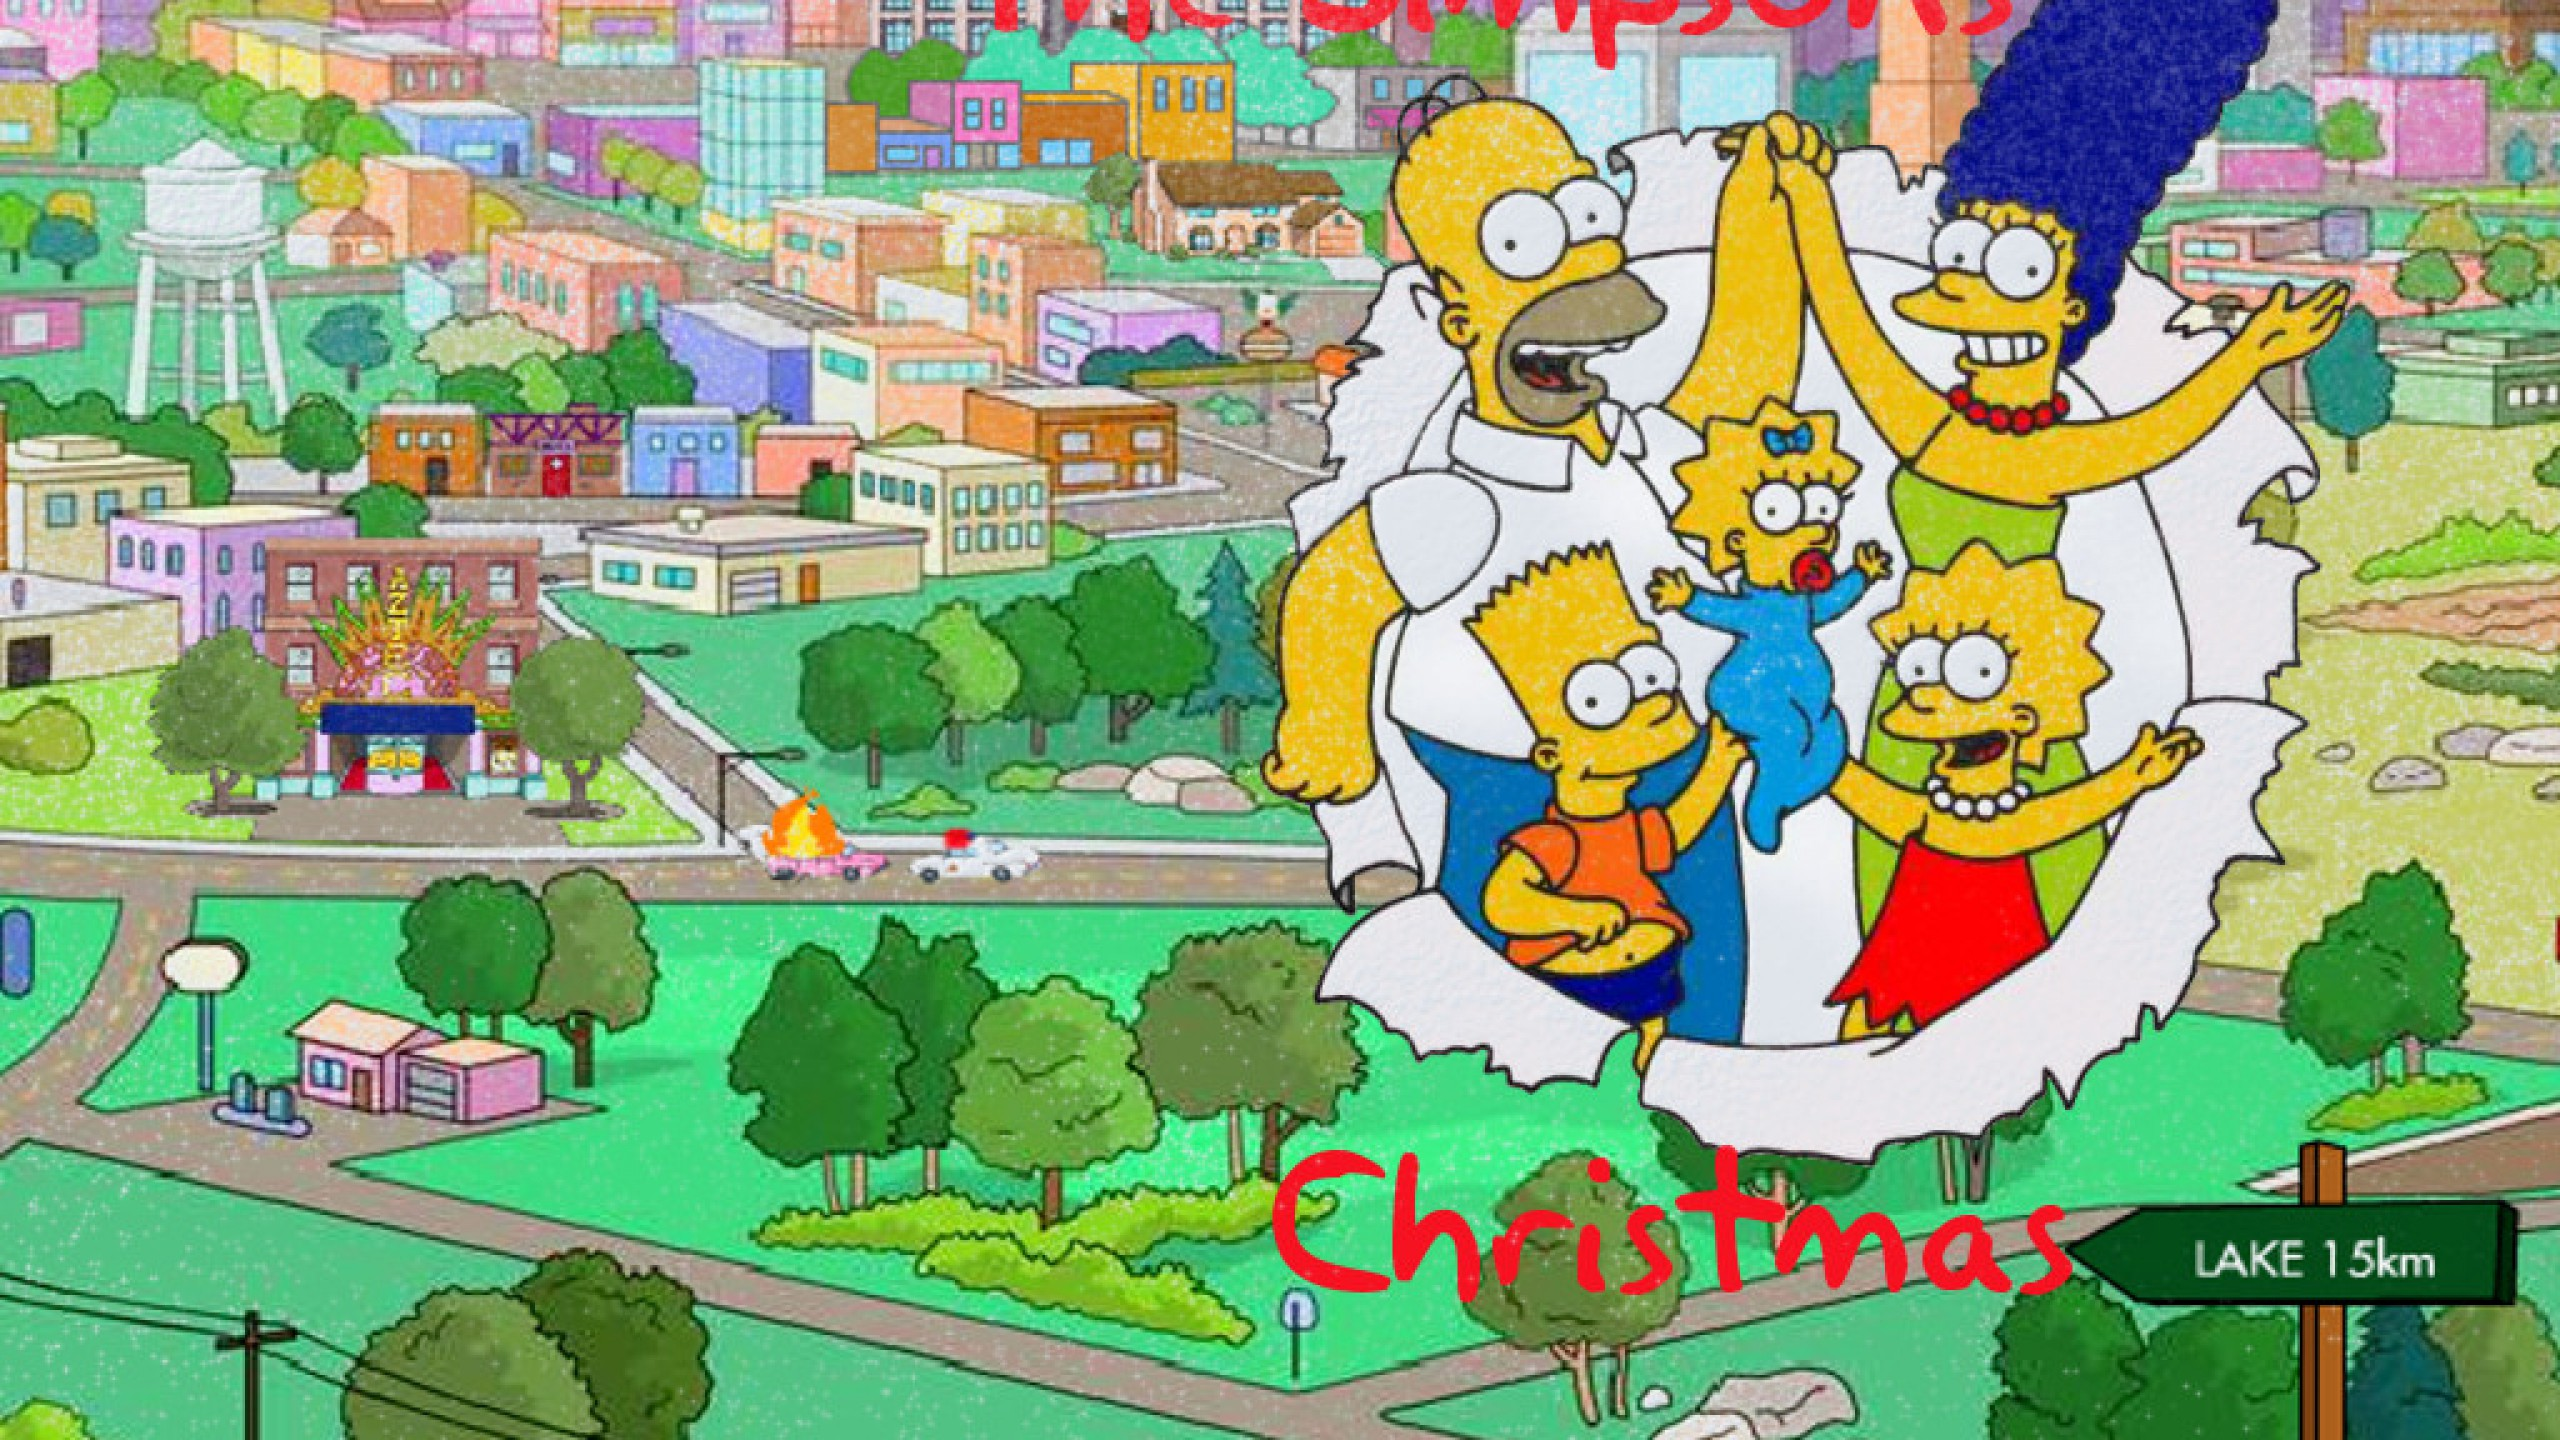 Wallpaper, Christmas, Simpsons - 1607719